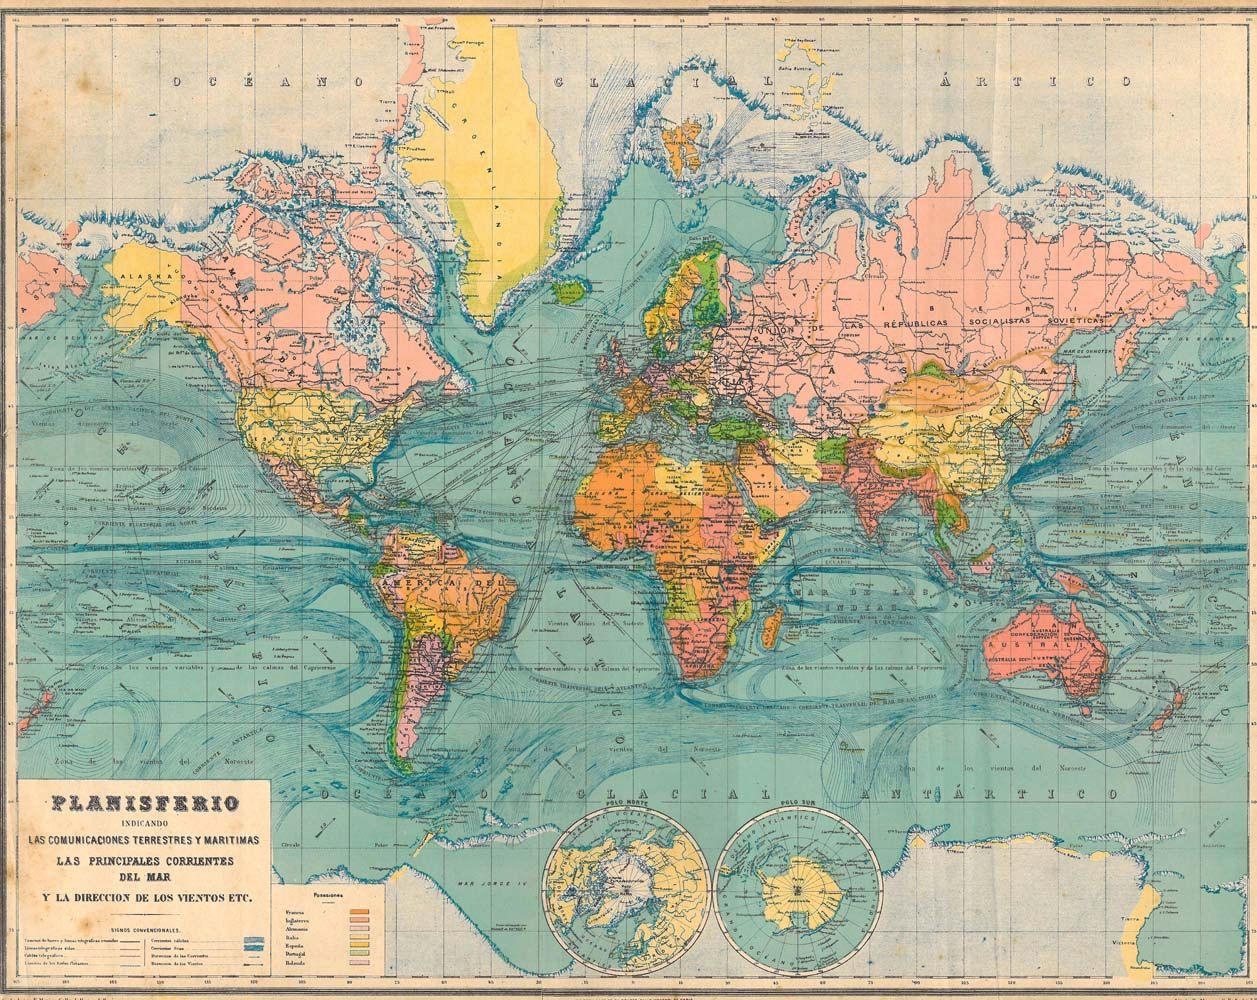 World map vintage etsy dinosauriensfo this page contains all info about world map vintage etsy gumiabroncs Gallery